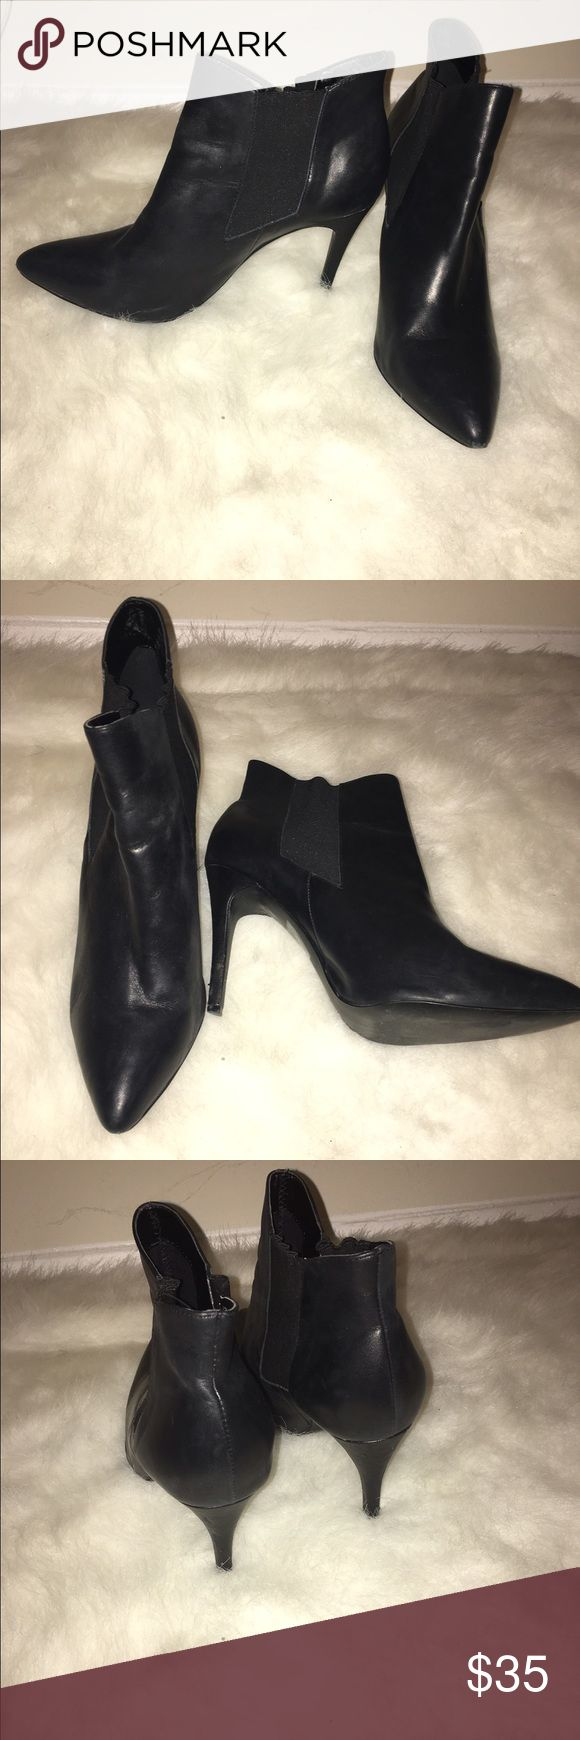 River Island Heeled Booties Black Leather Boots with a 4 inch heel. Worn twice. River Island Shoes Heeled Boots